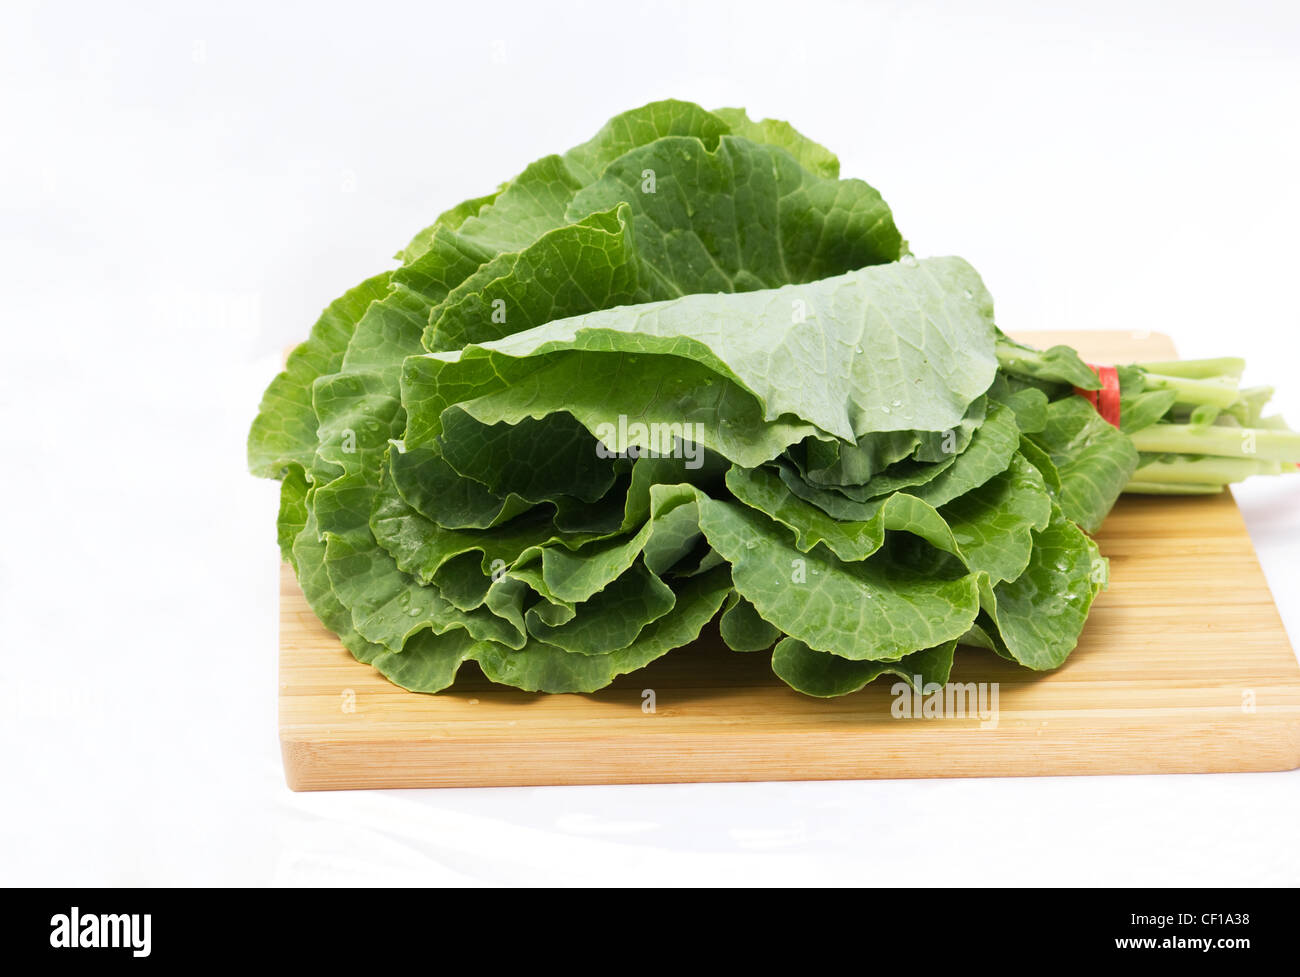 Collard greens on a wooden cutting board on white background - Stock Image